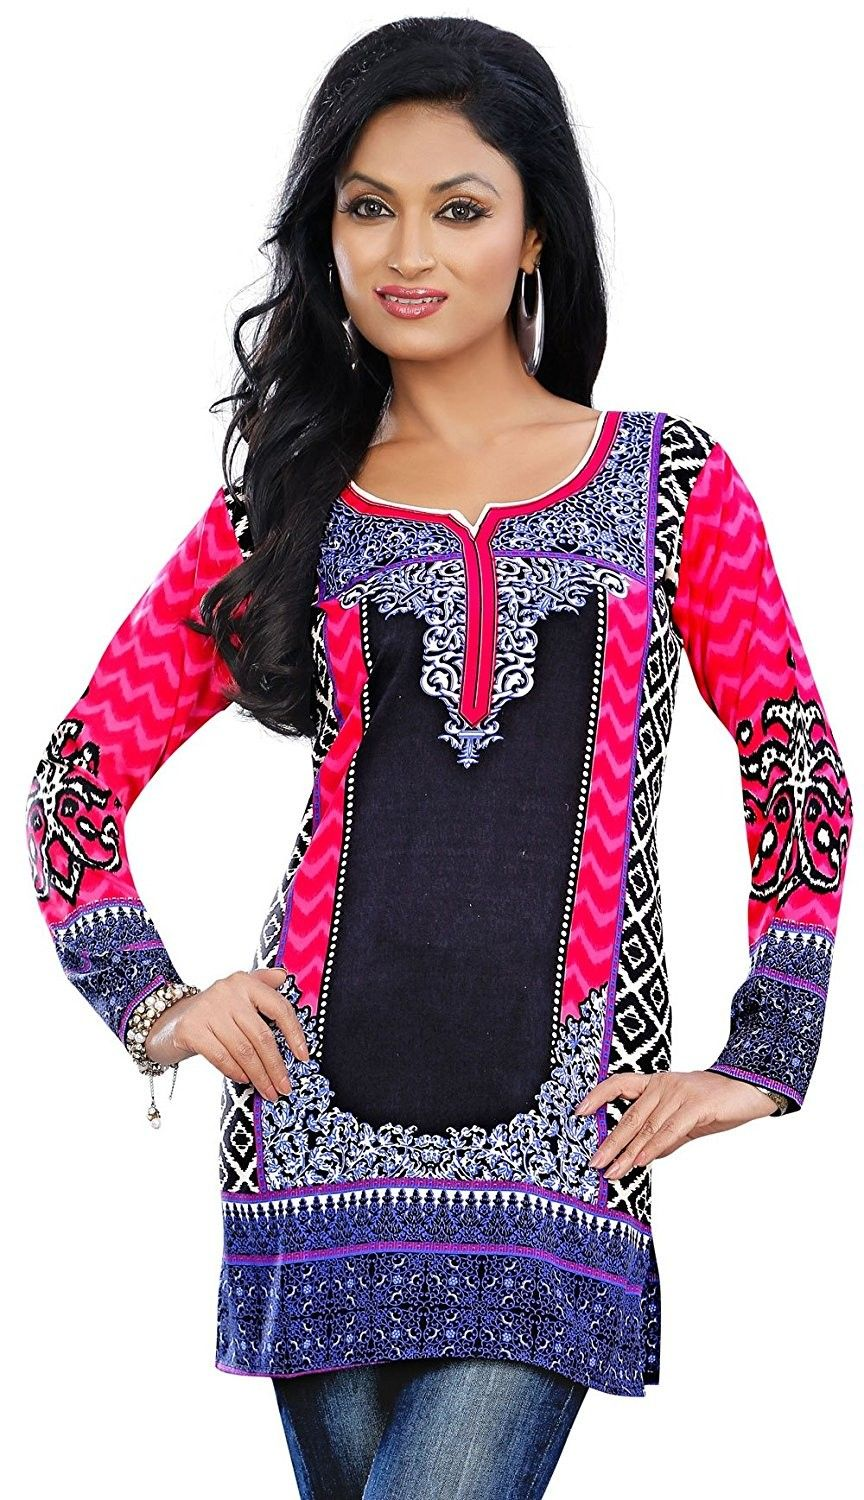 ab96a02cd7 colorful Indian Kurti Tunic Top Printed Womens Blouse India Clothes - Pink  - C411UIZWYNF,Women's Clothing, Tops & Tees, Blouses & Button-Down Shirts # women ...